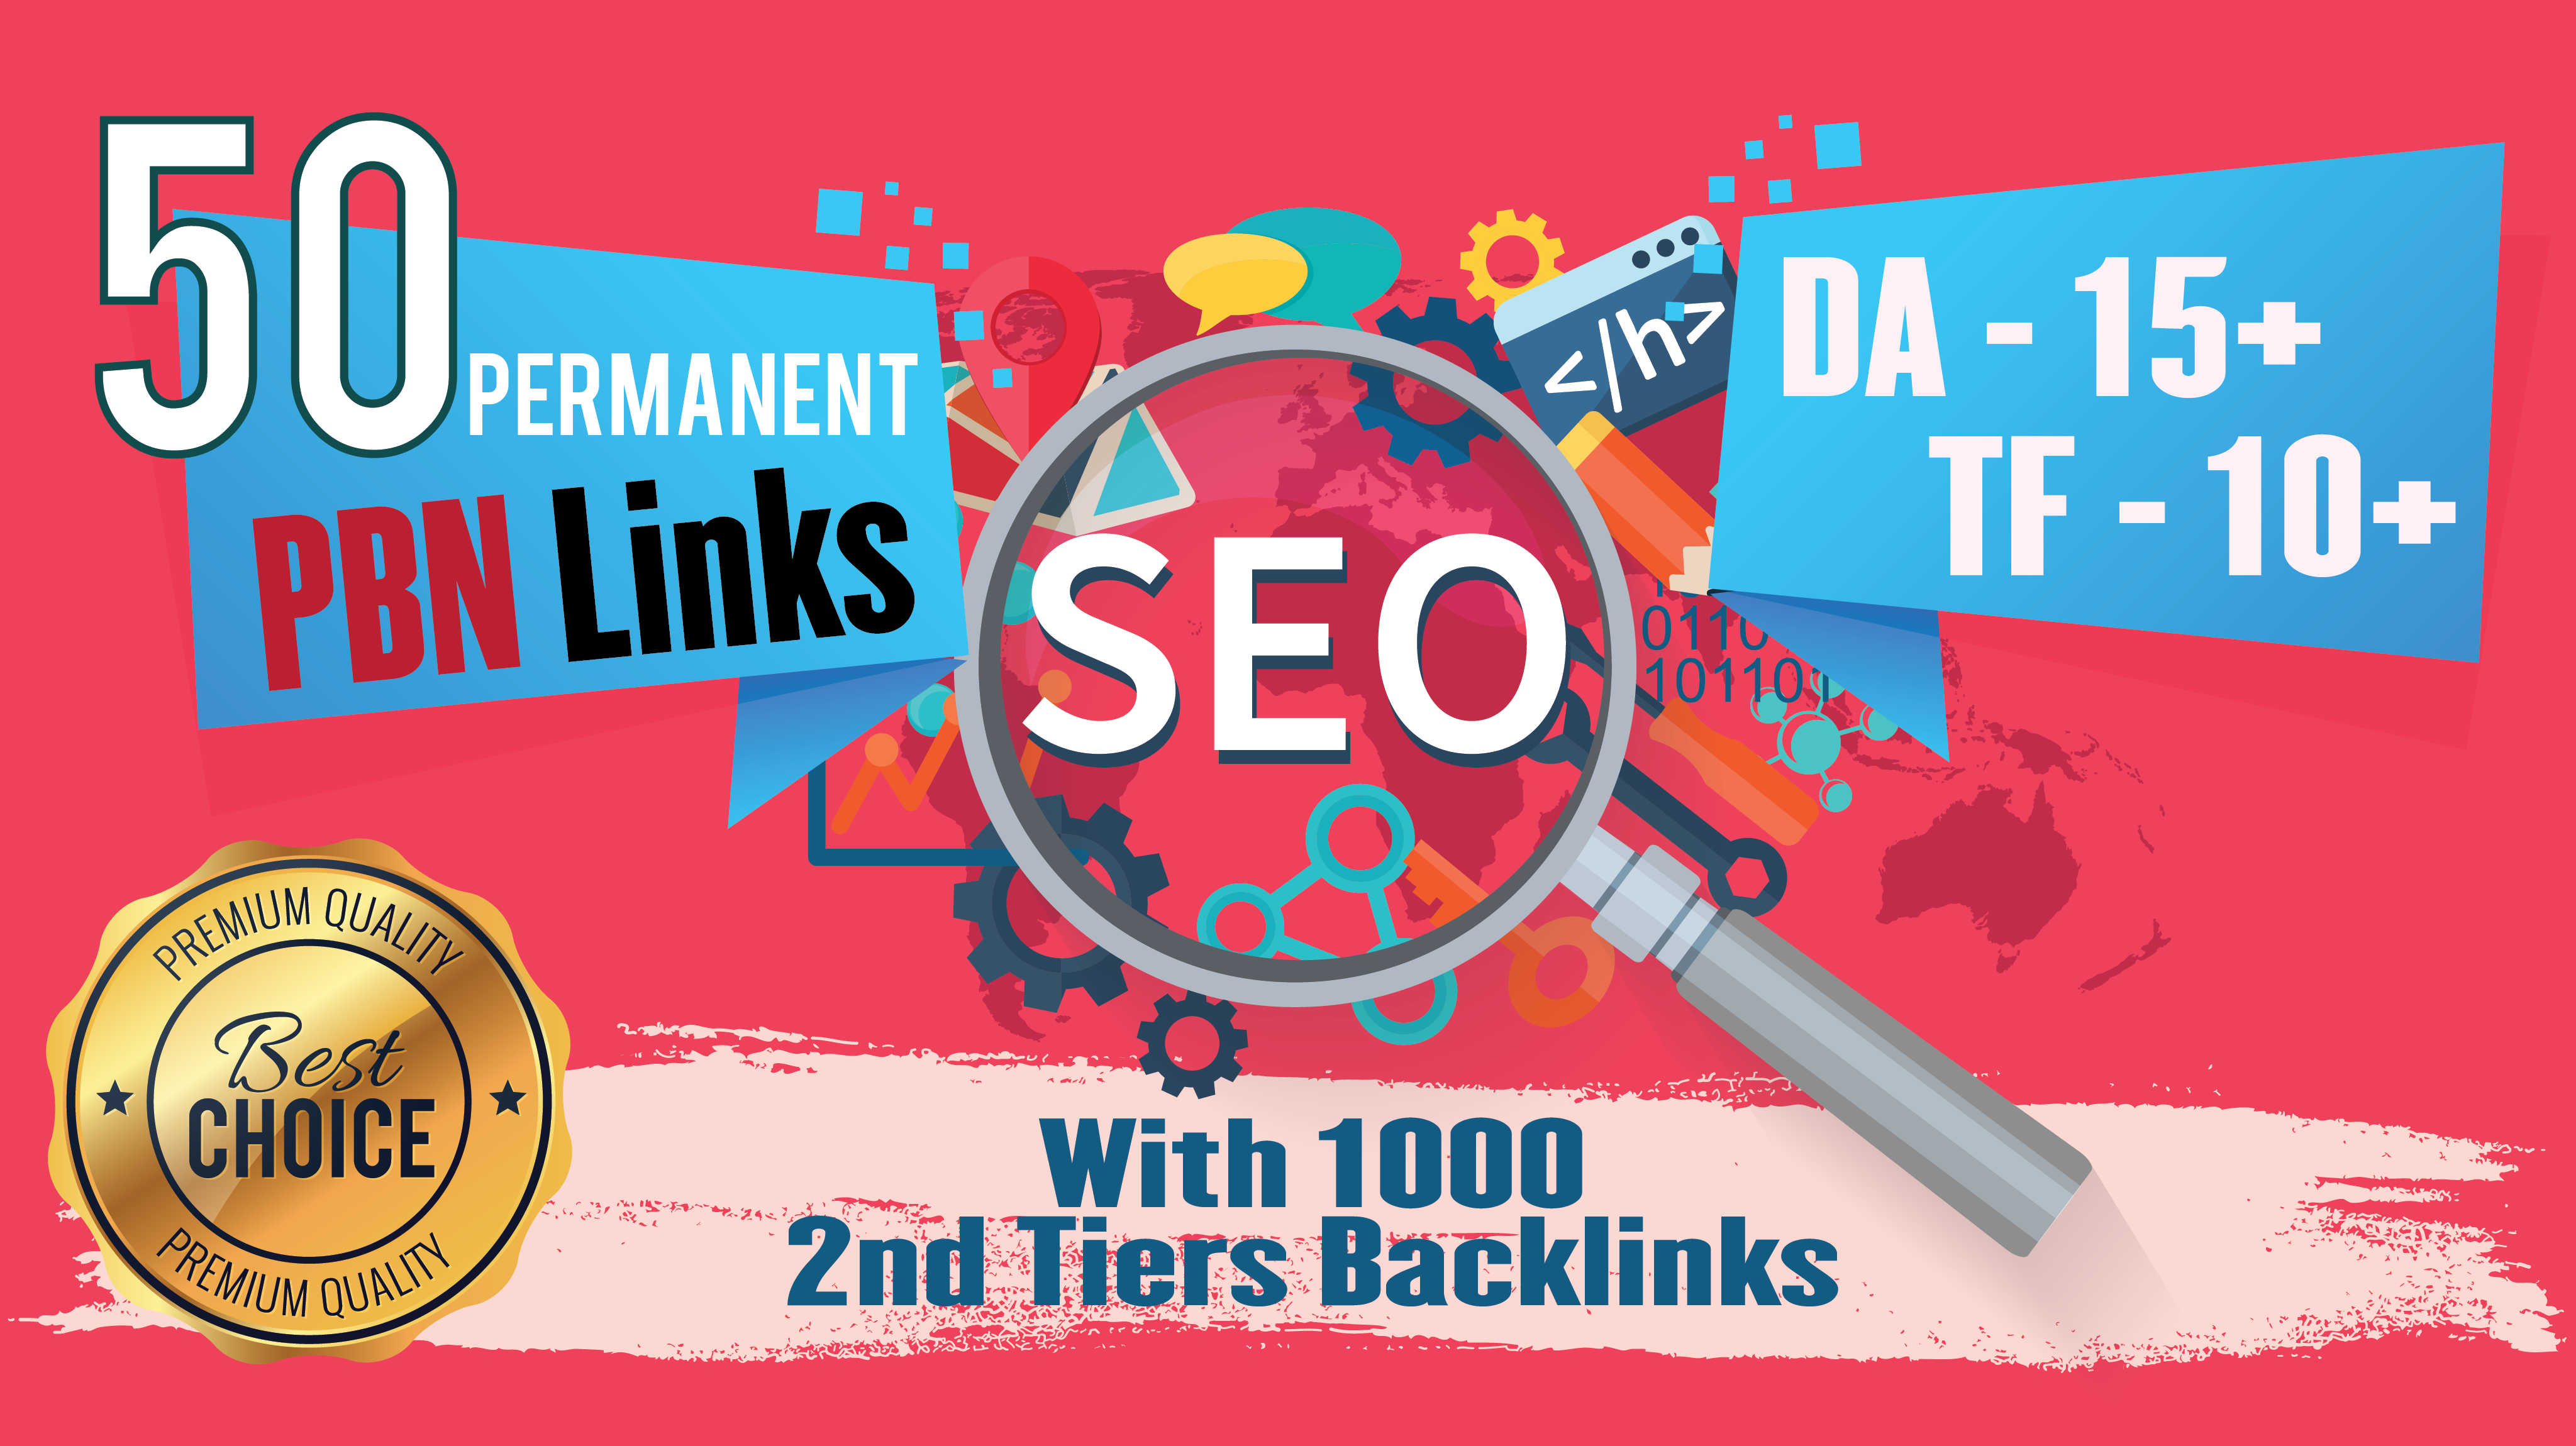 2021 Powerful 50 Homepage Dofollow PBN With 1000 2nd Tiers Backlinks google 1st page